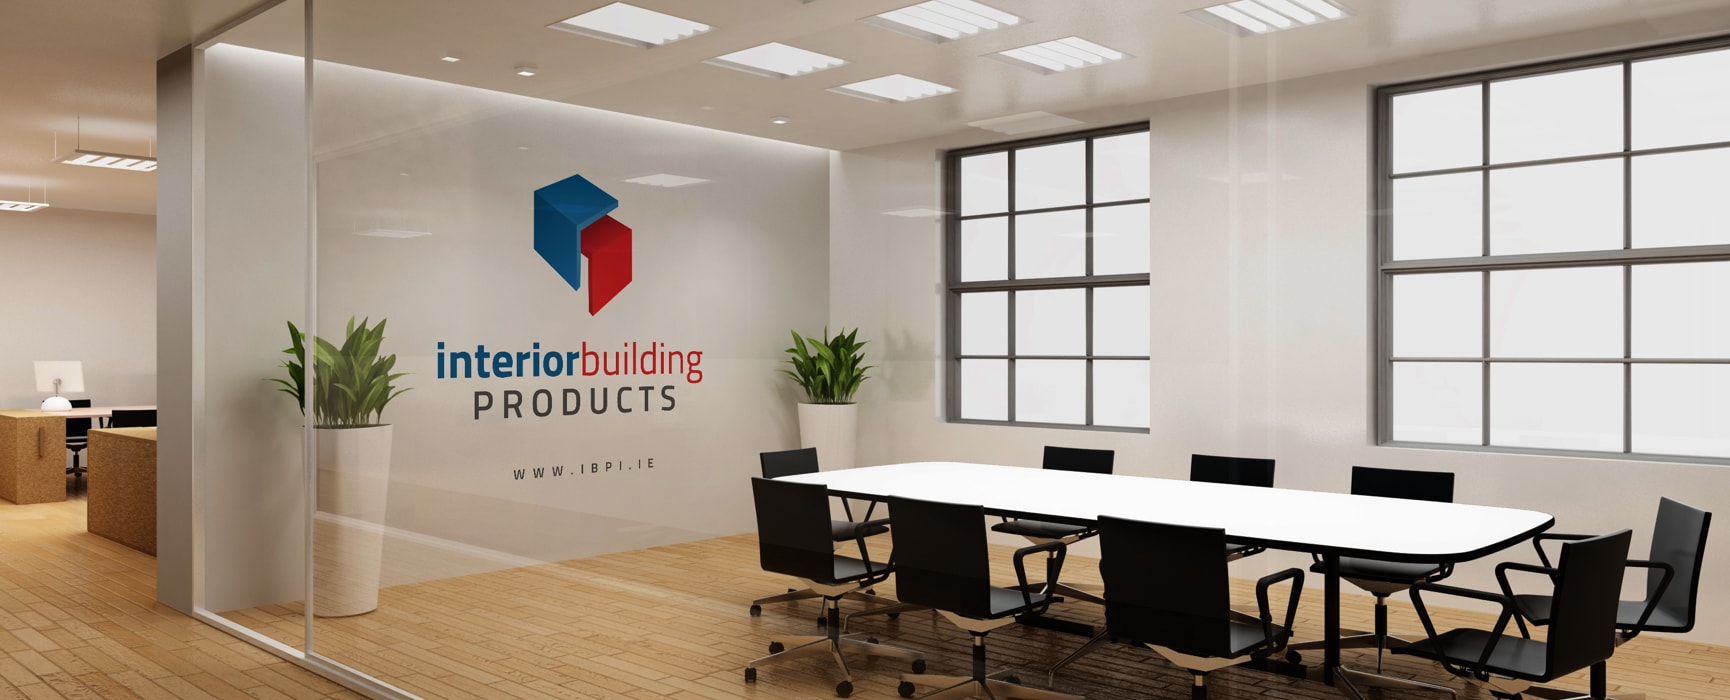 Interior Building Products - Meeting Room Mockup